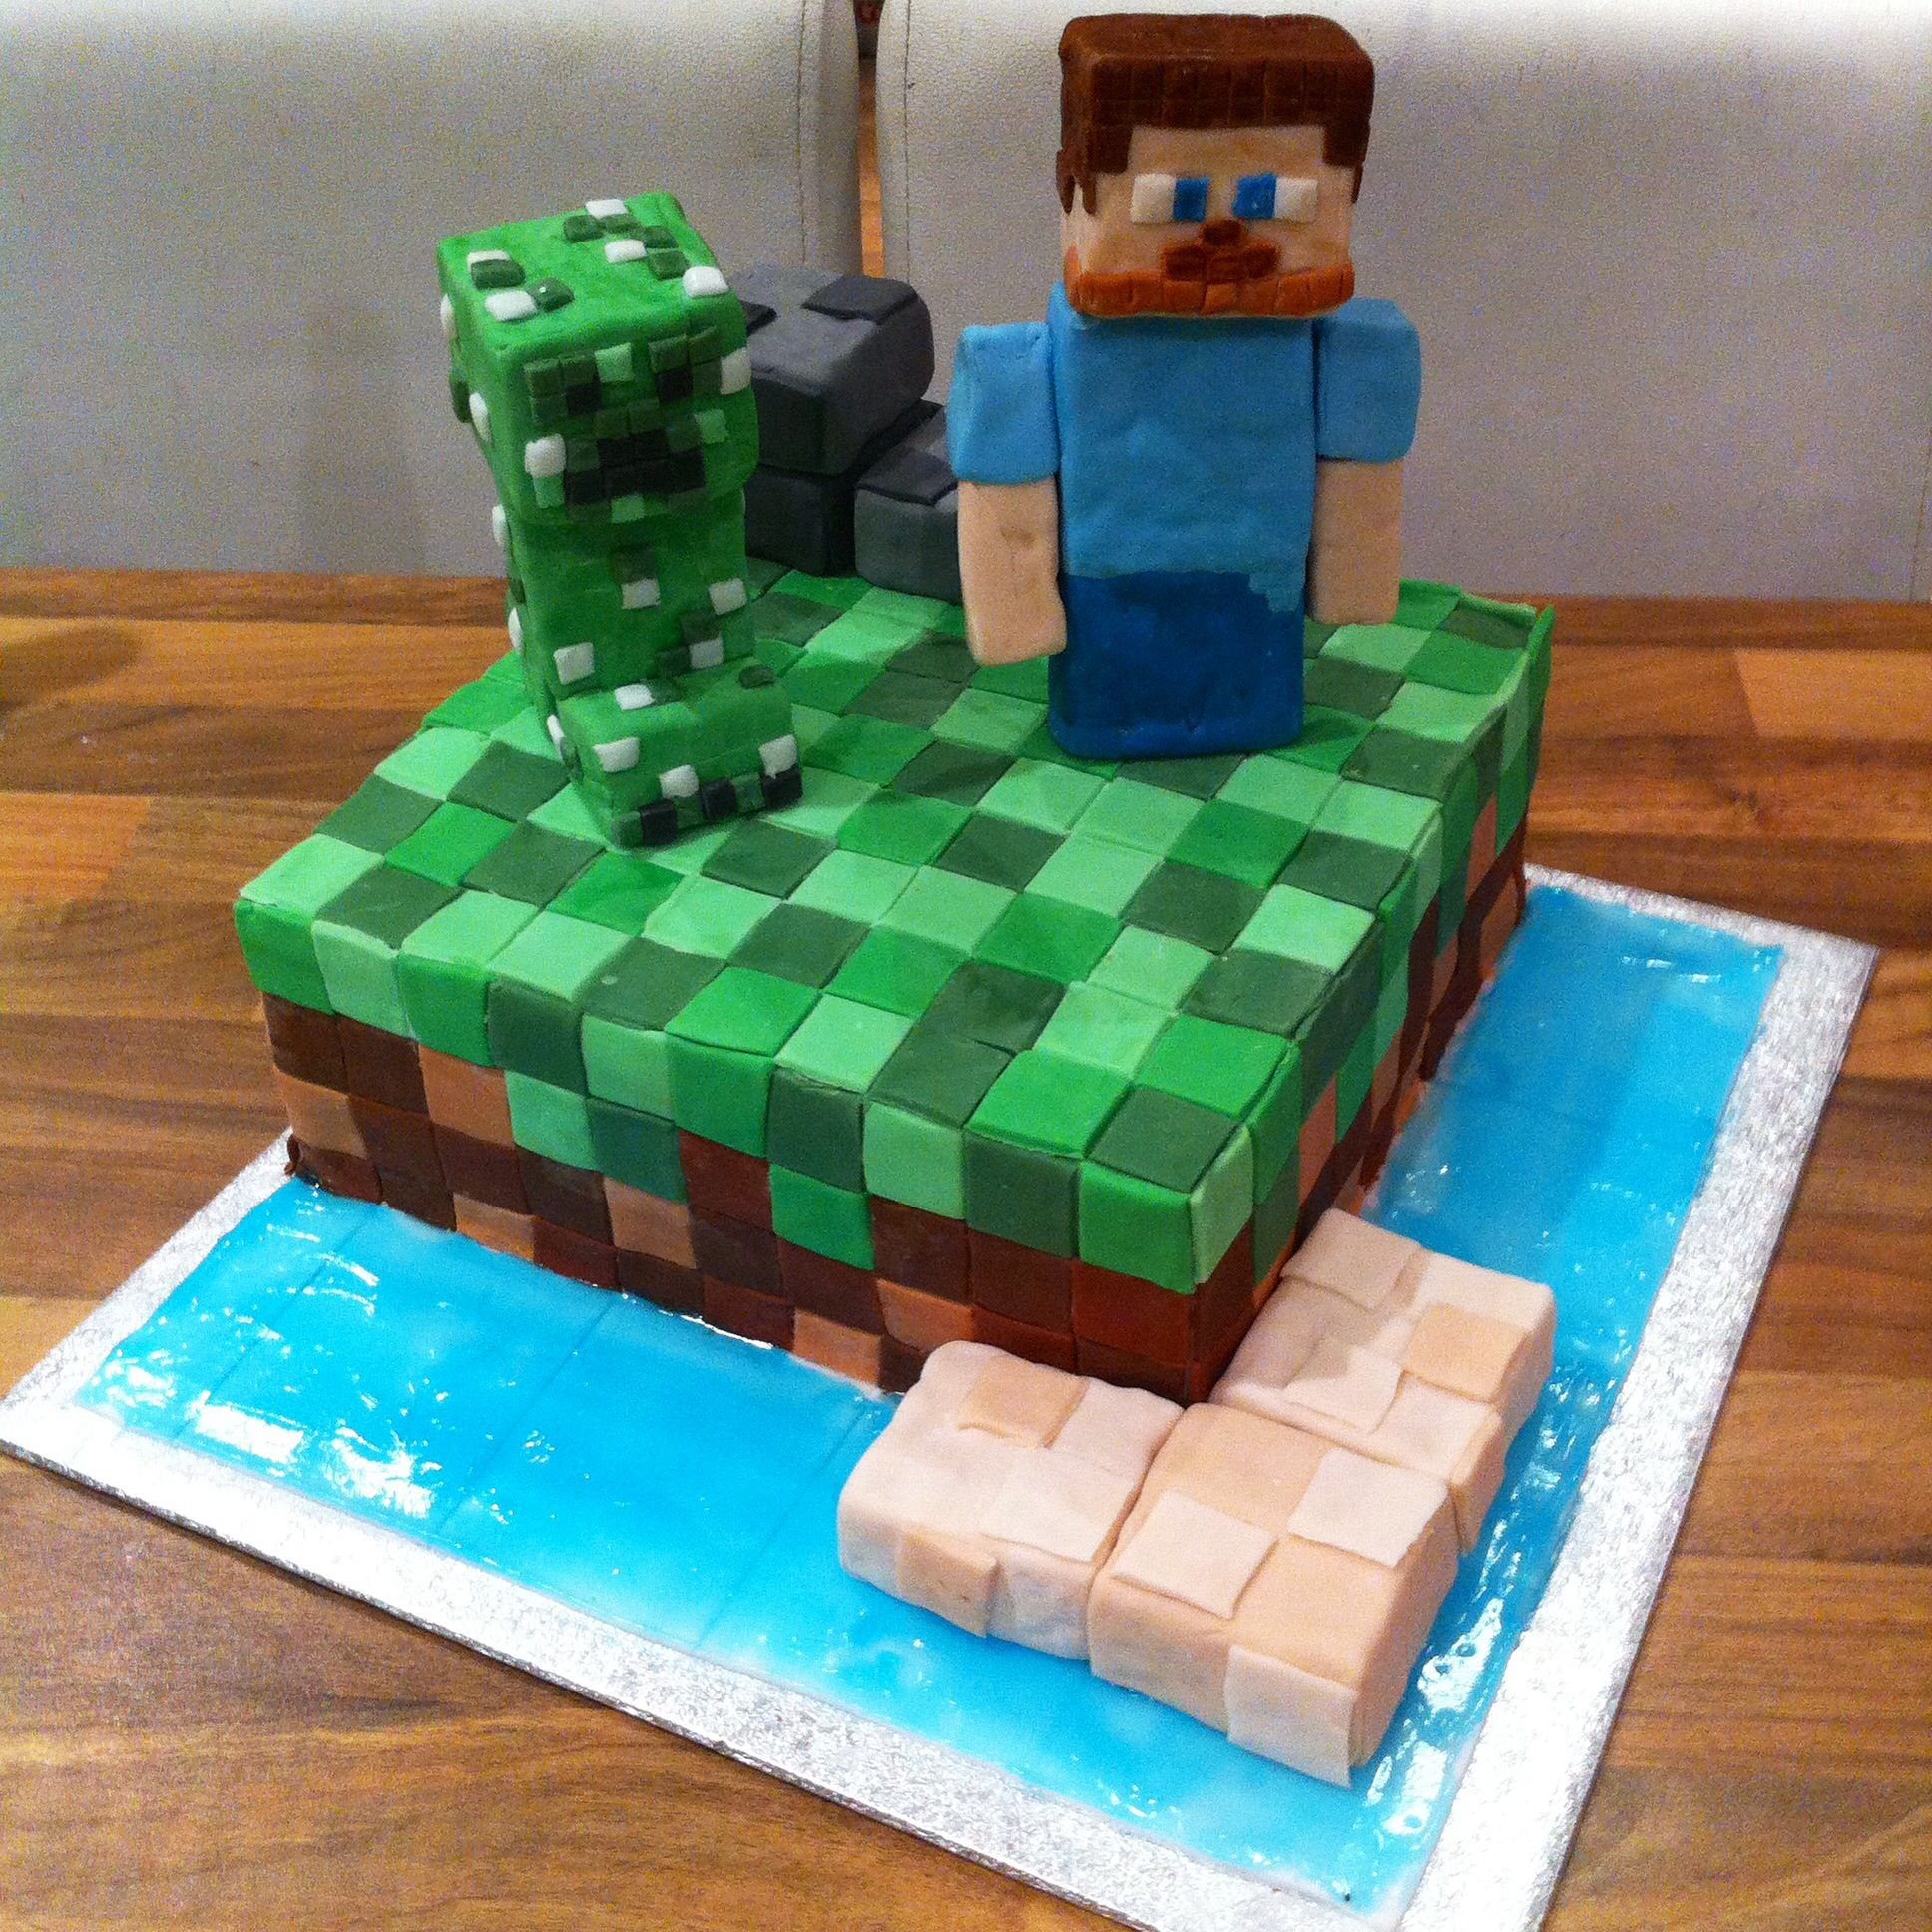 Minecraft Steve and Creeper cake - Minecraft party by Maggie Anna Cakes and Treats